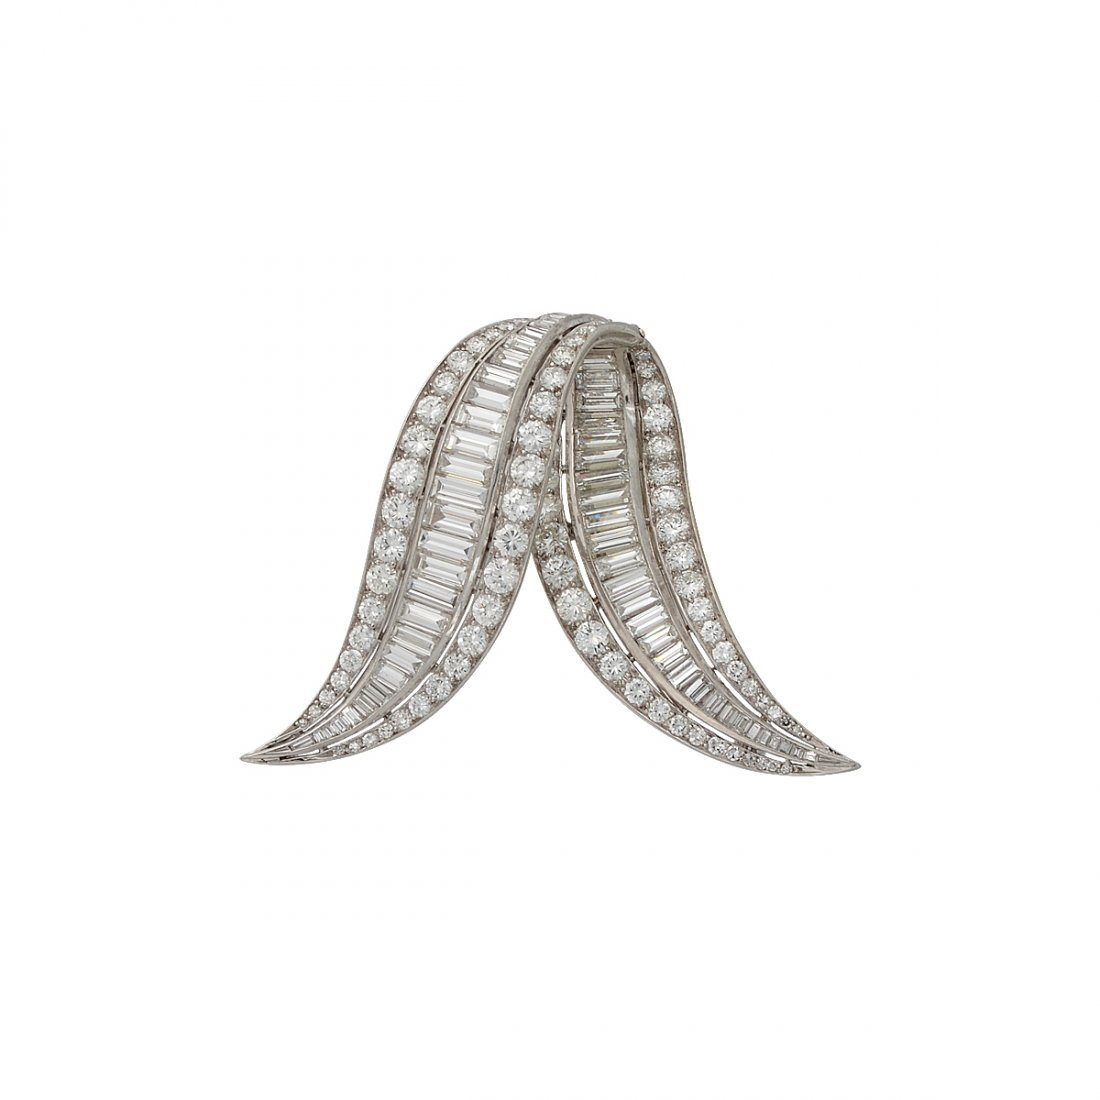 3: Platinum scarf clip set with approximately 14cts of